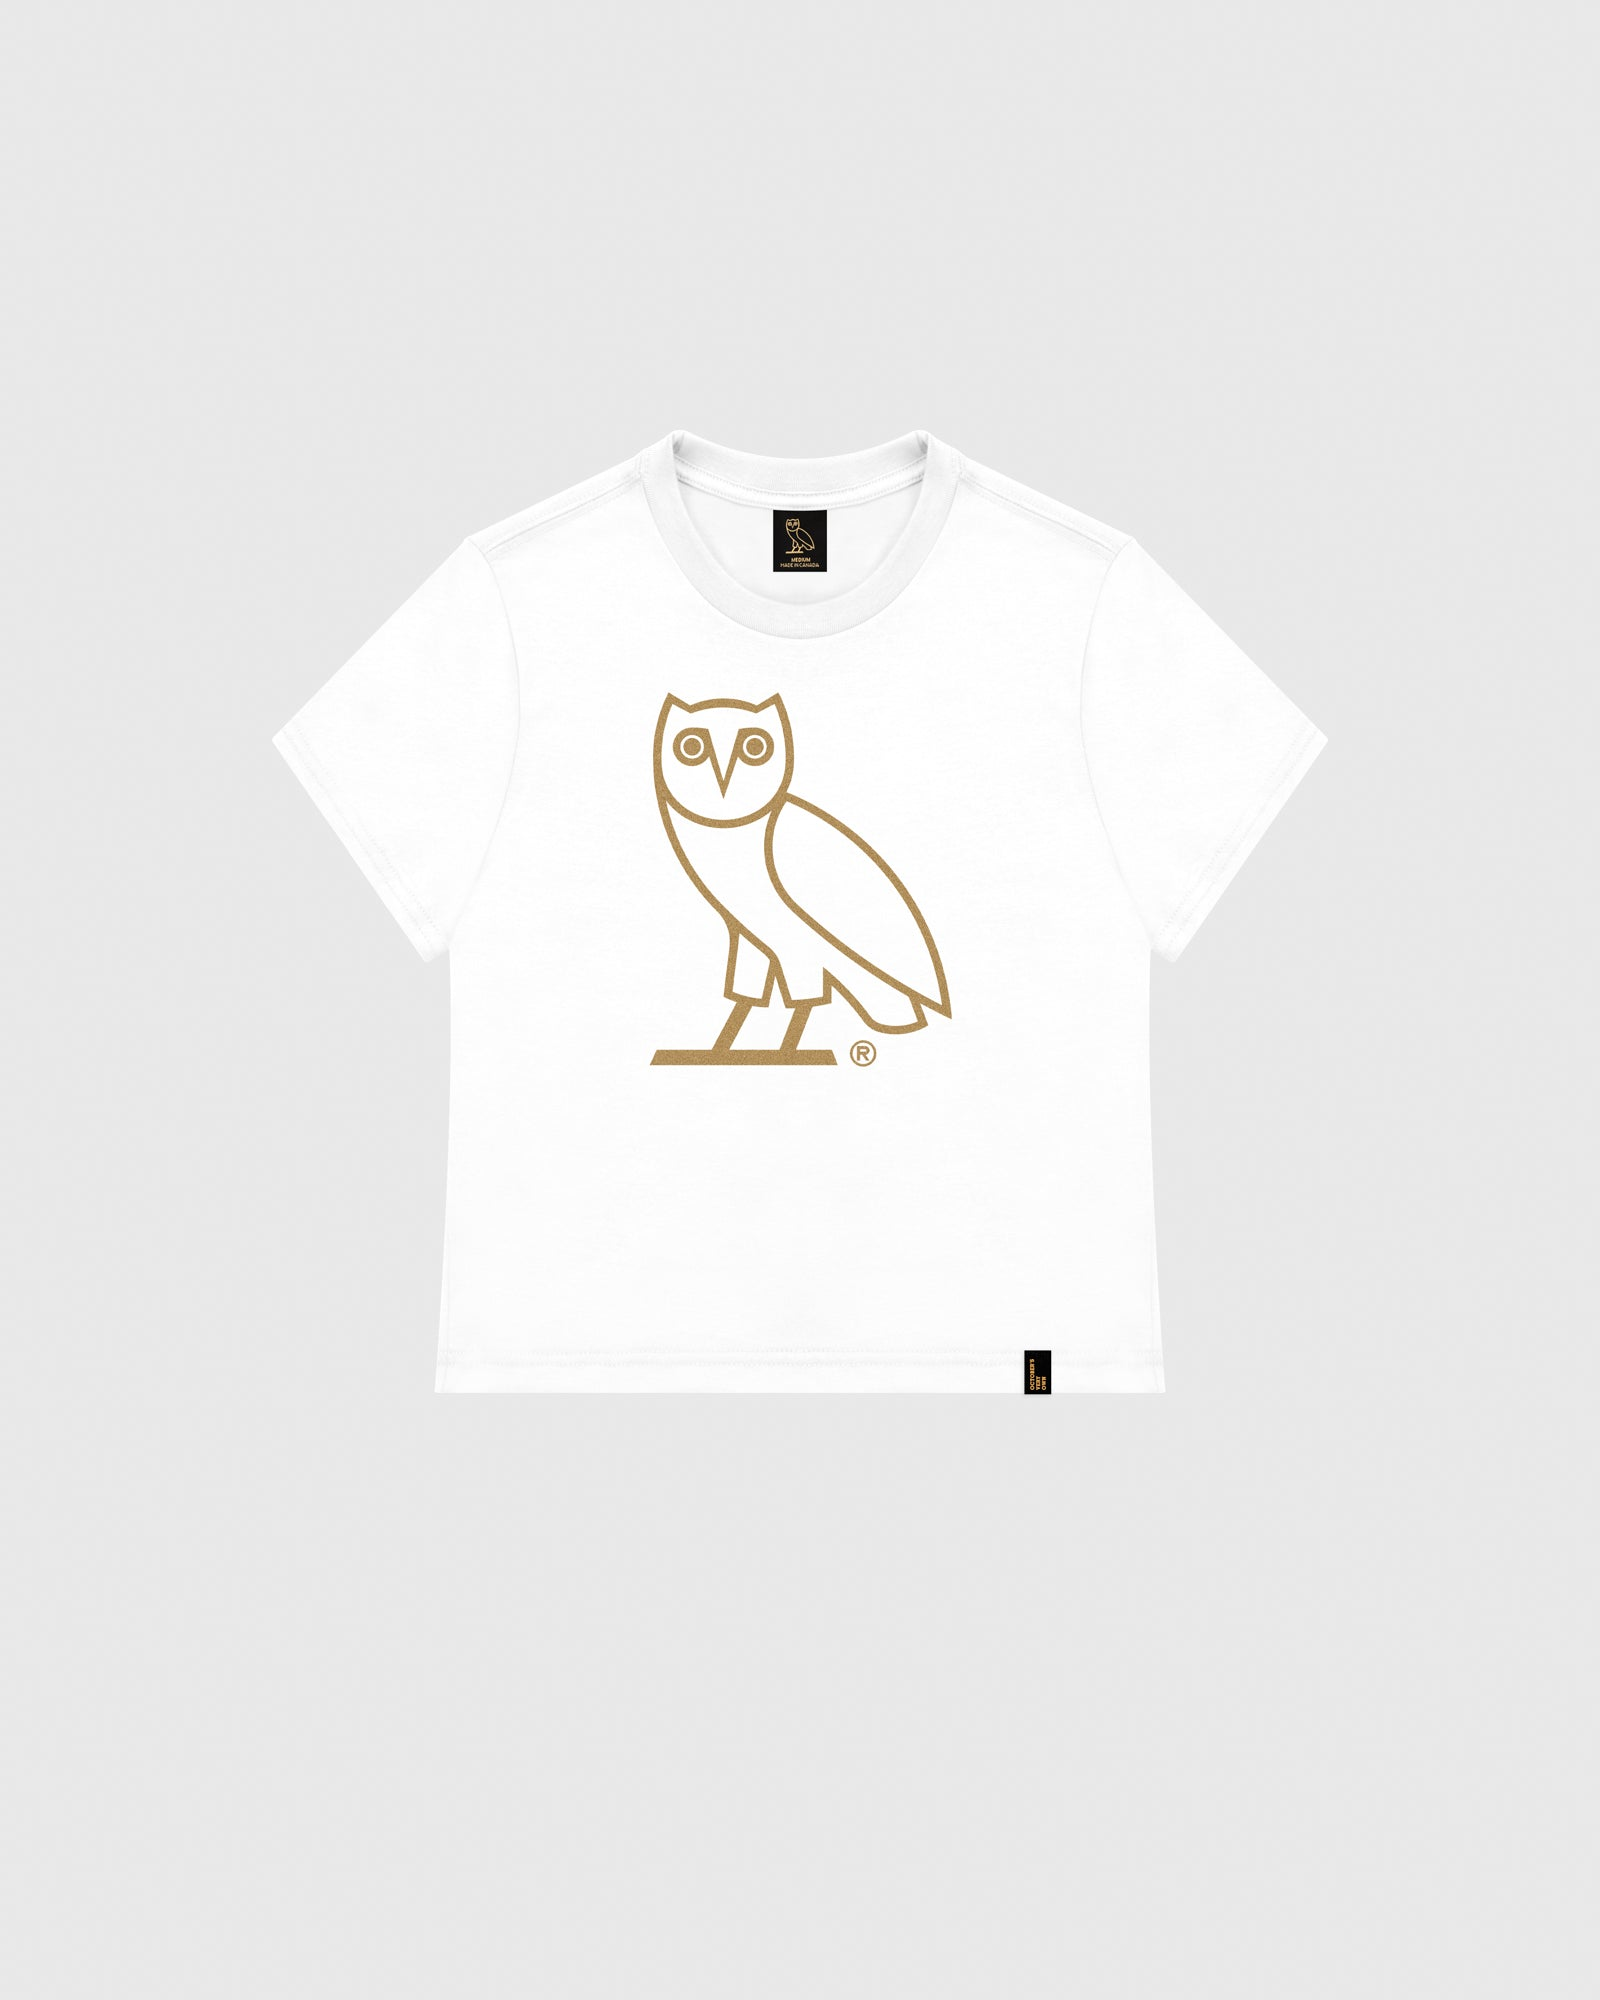 18f9dc1e1 WOMEN'S OVO OWL T-SHIRT - WHITE – October's Very Own Online US